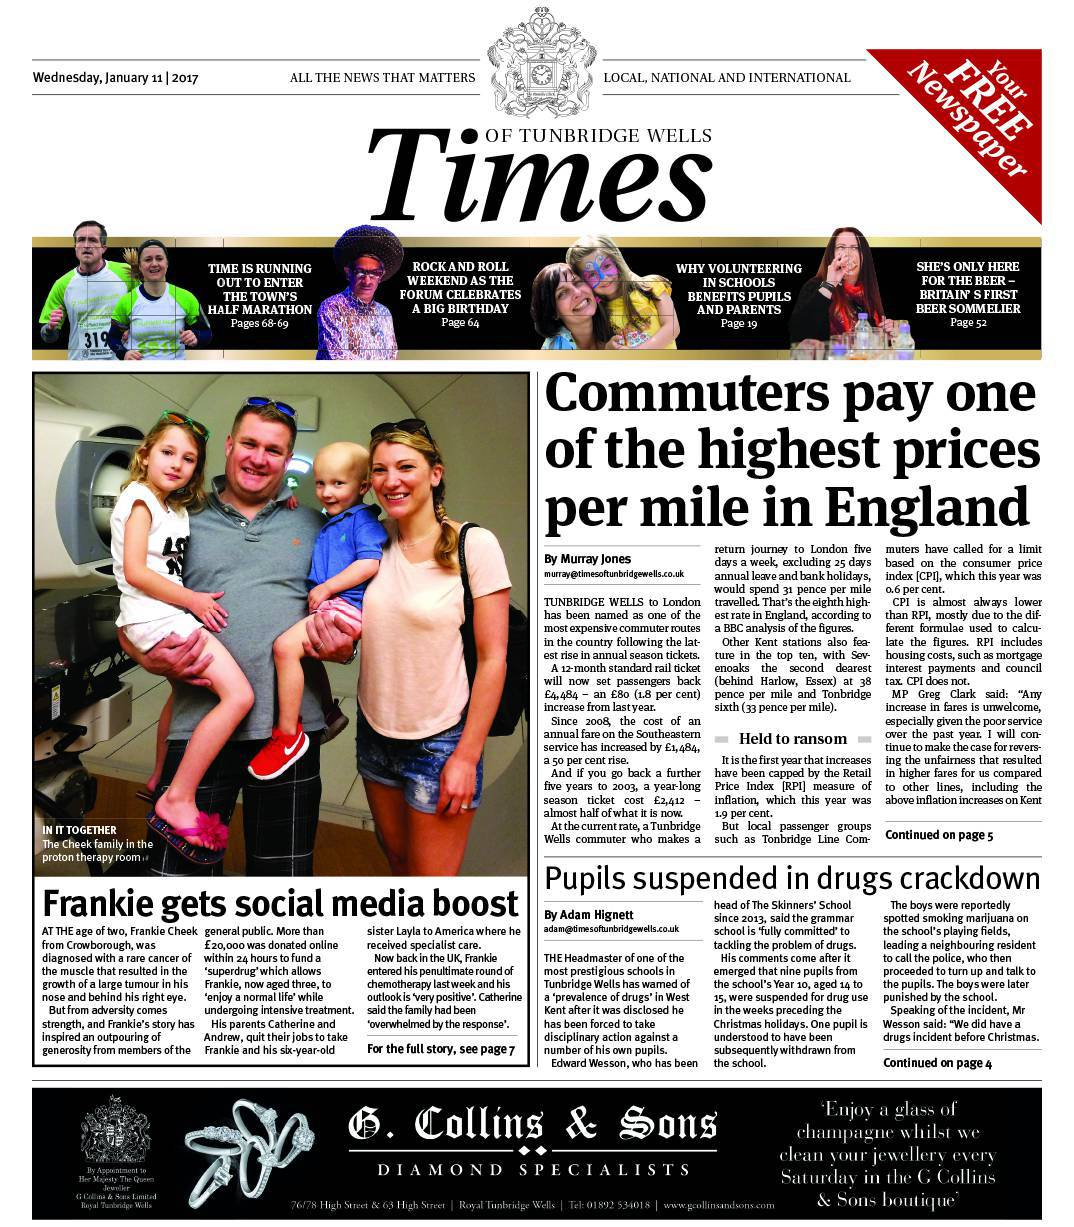 Read the Times of Tunbridge Wells - 11th January 2017